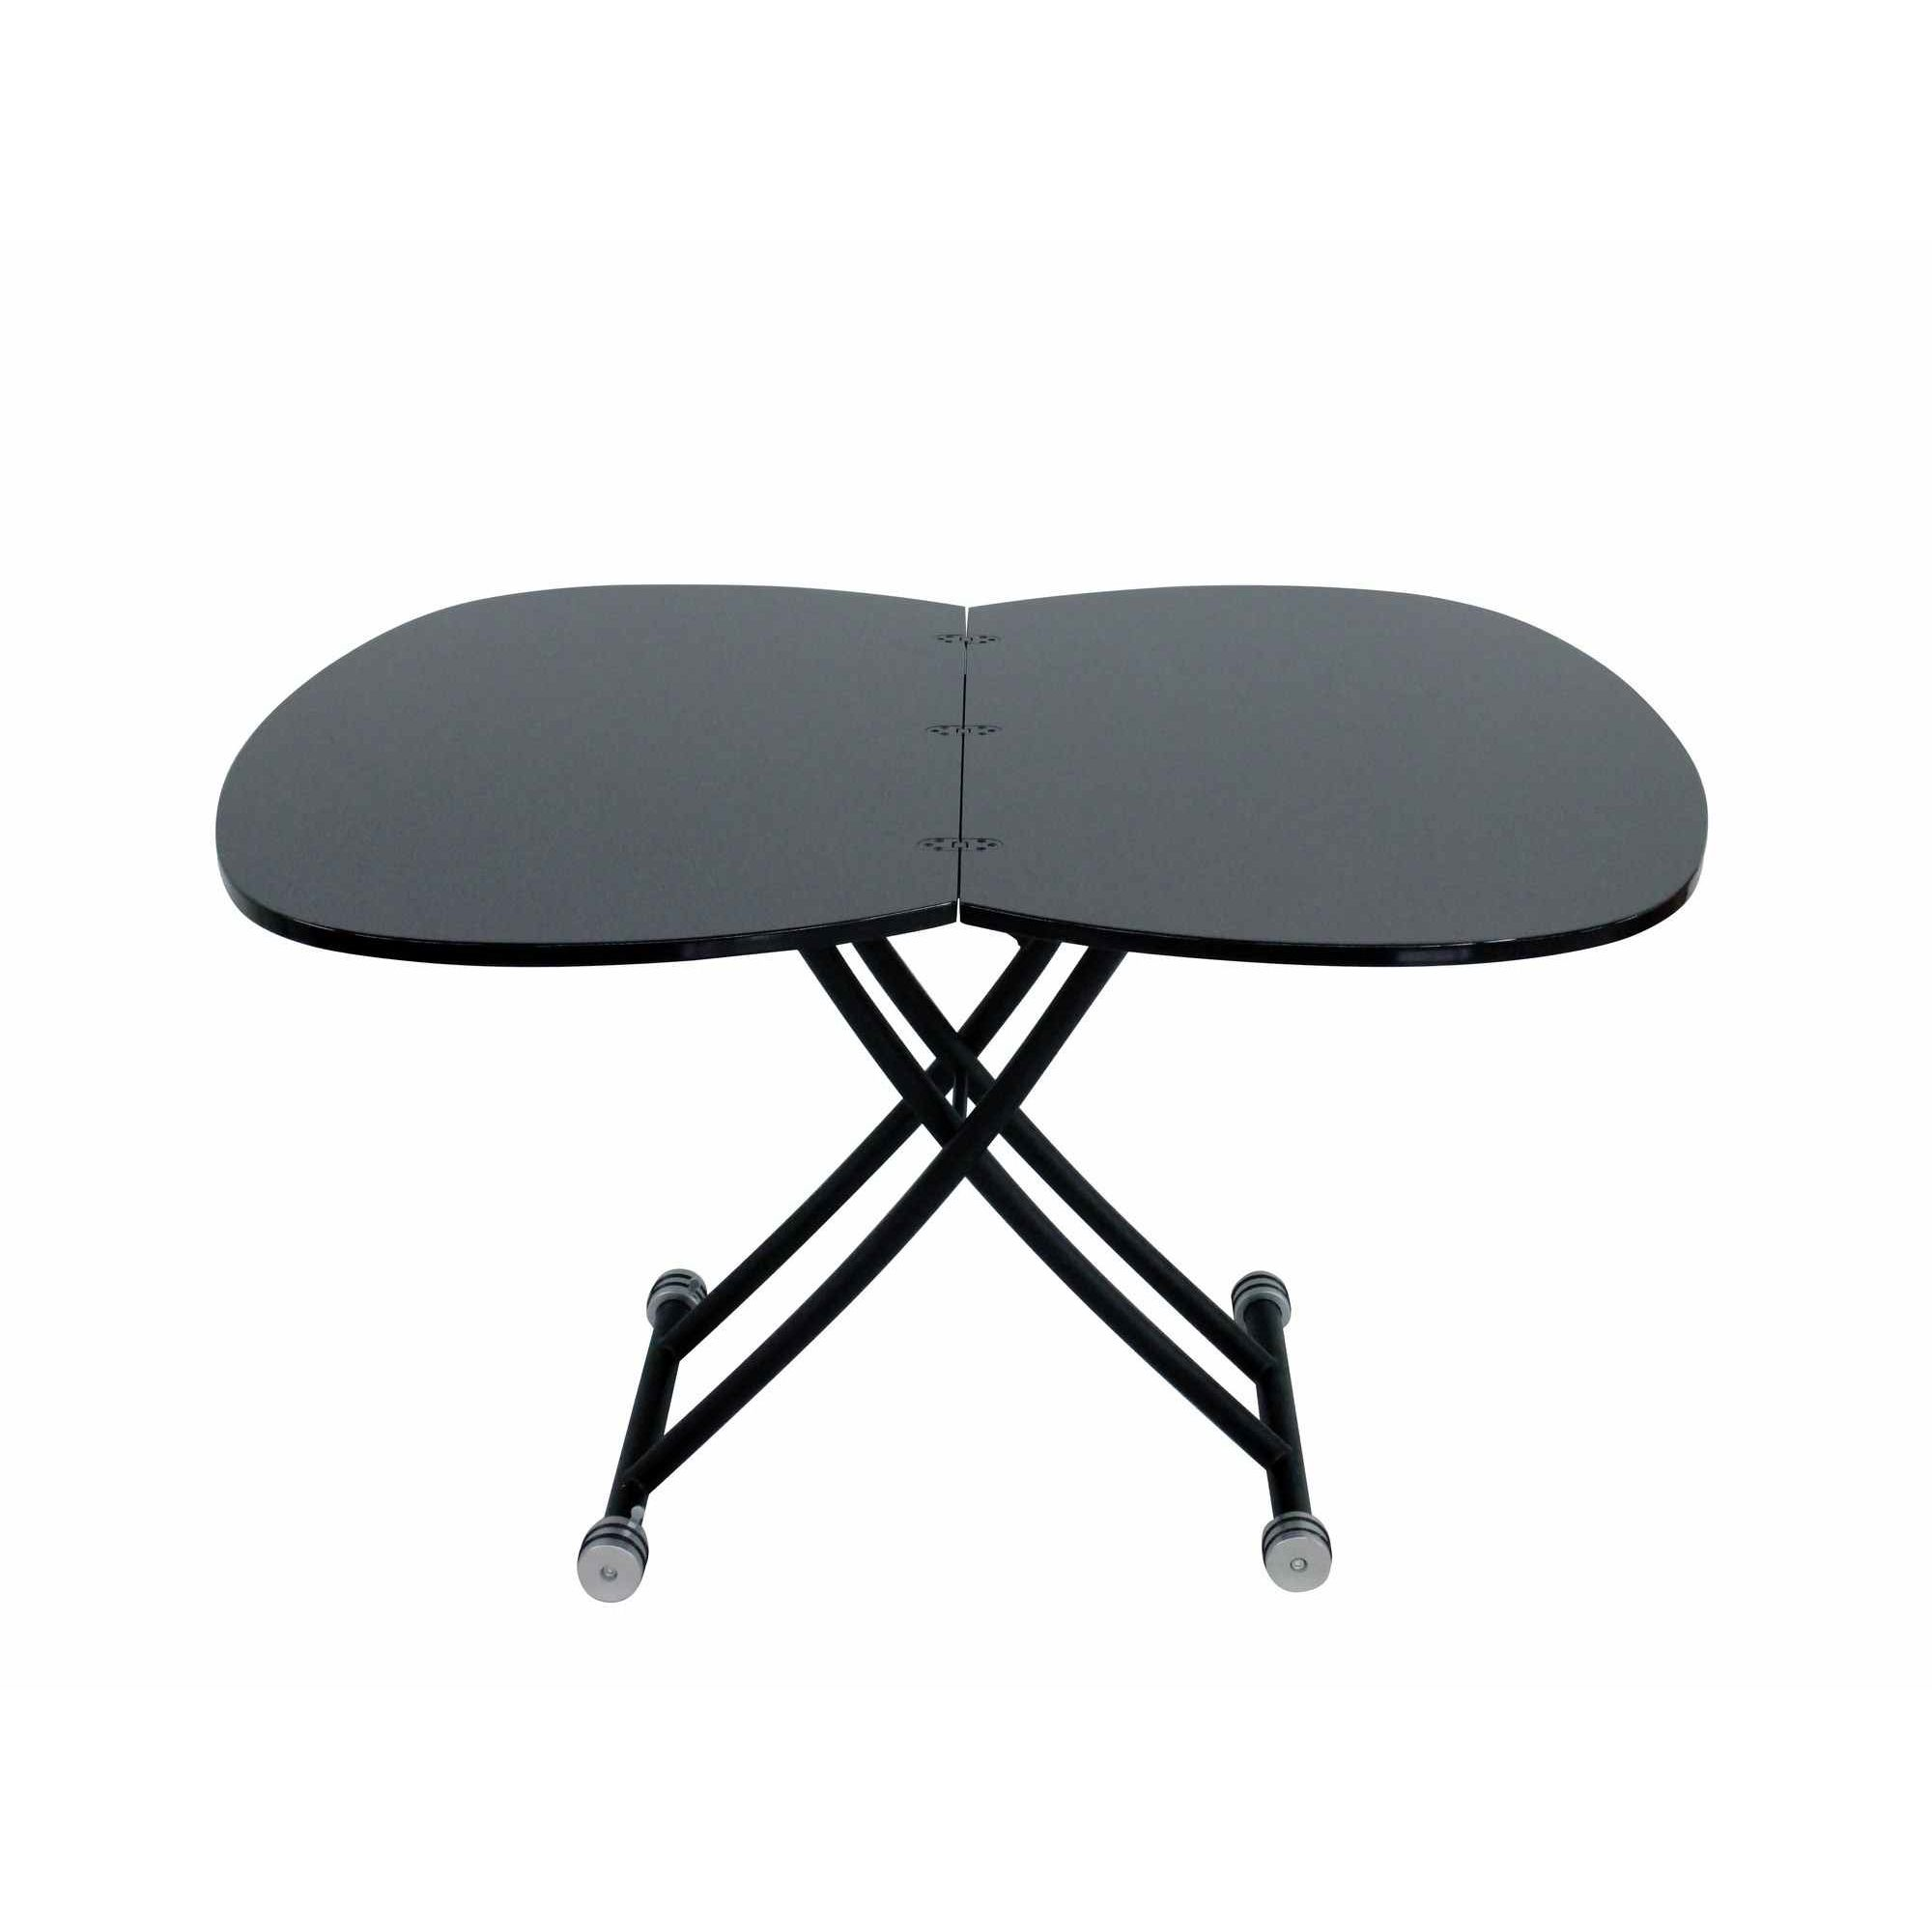 Deco in paris table basse relevable a rallonge laque for Table basse relevable noir